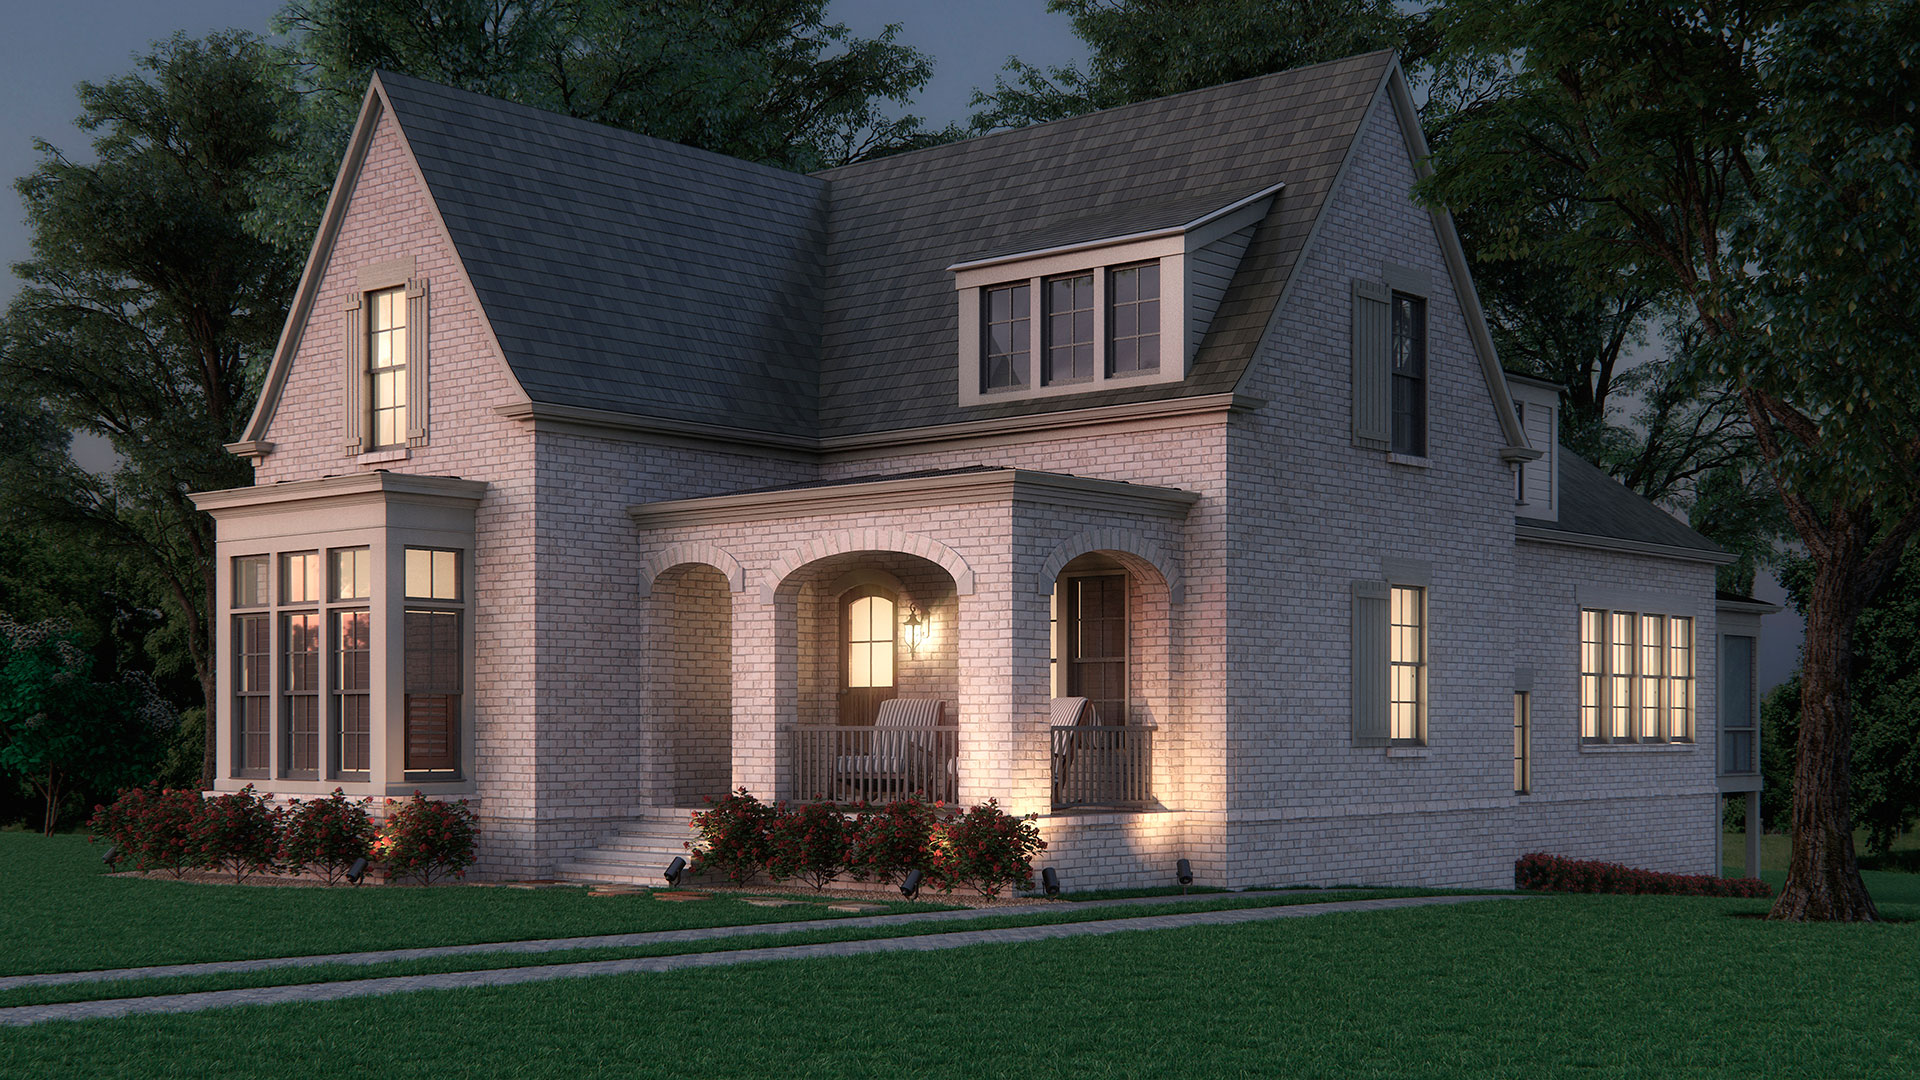 House Architectural Rendering - Day